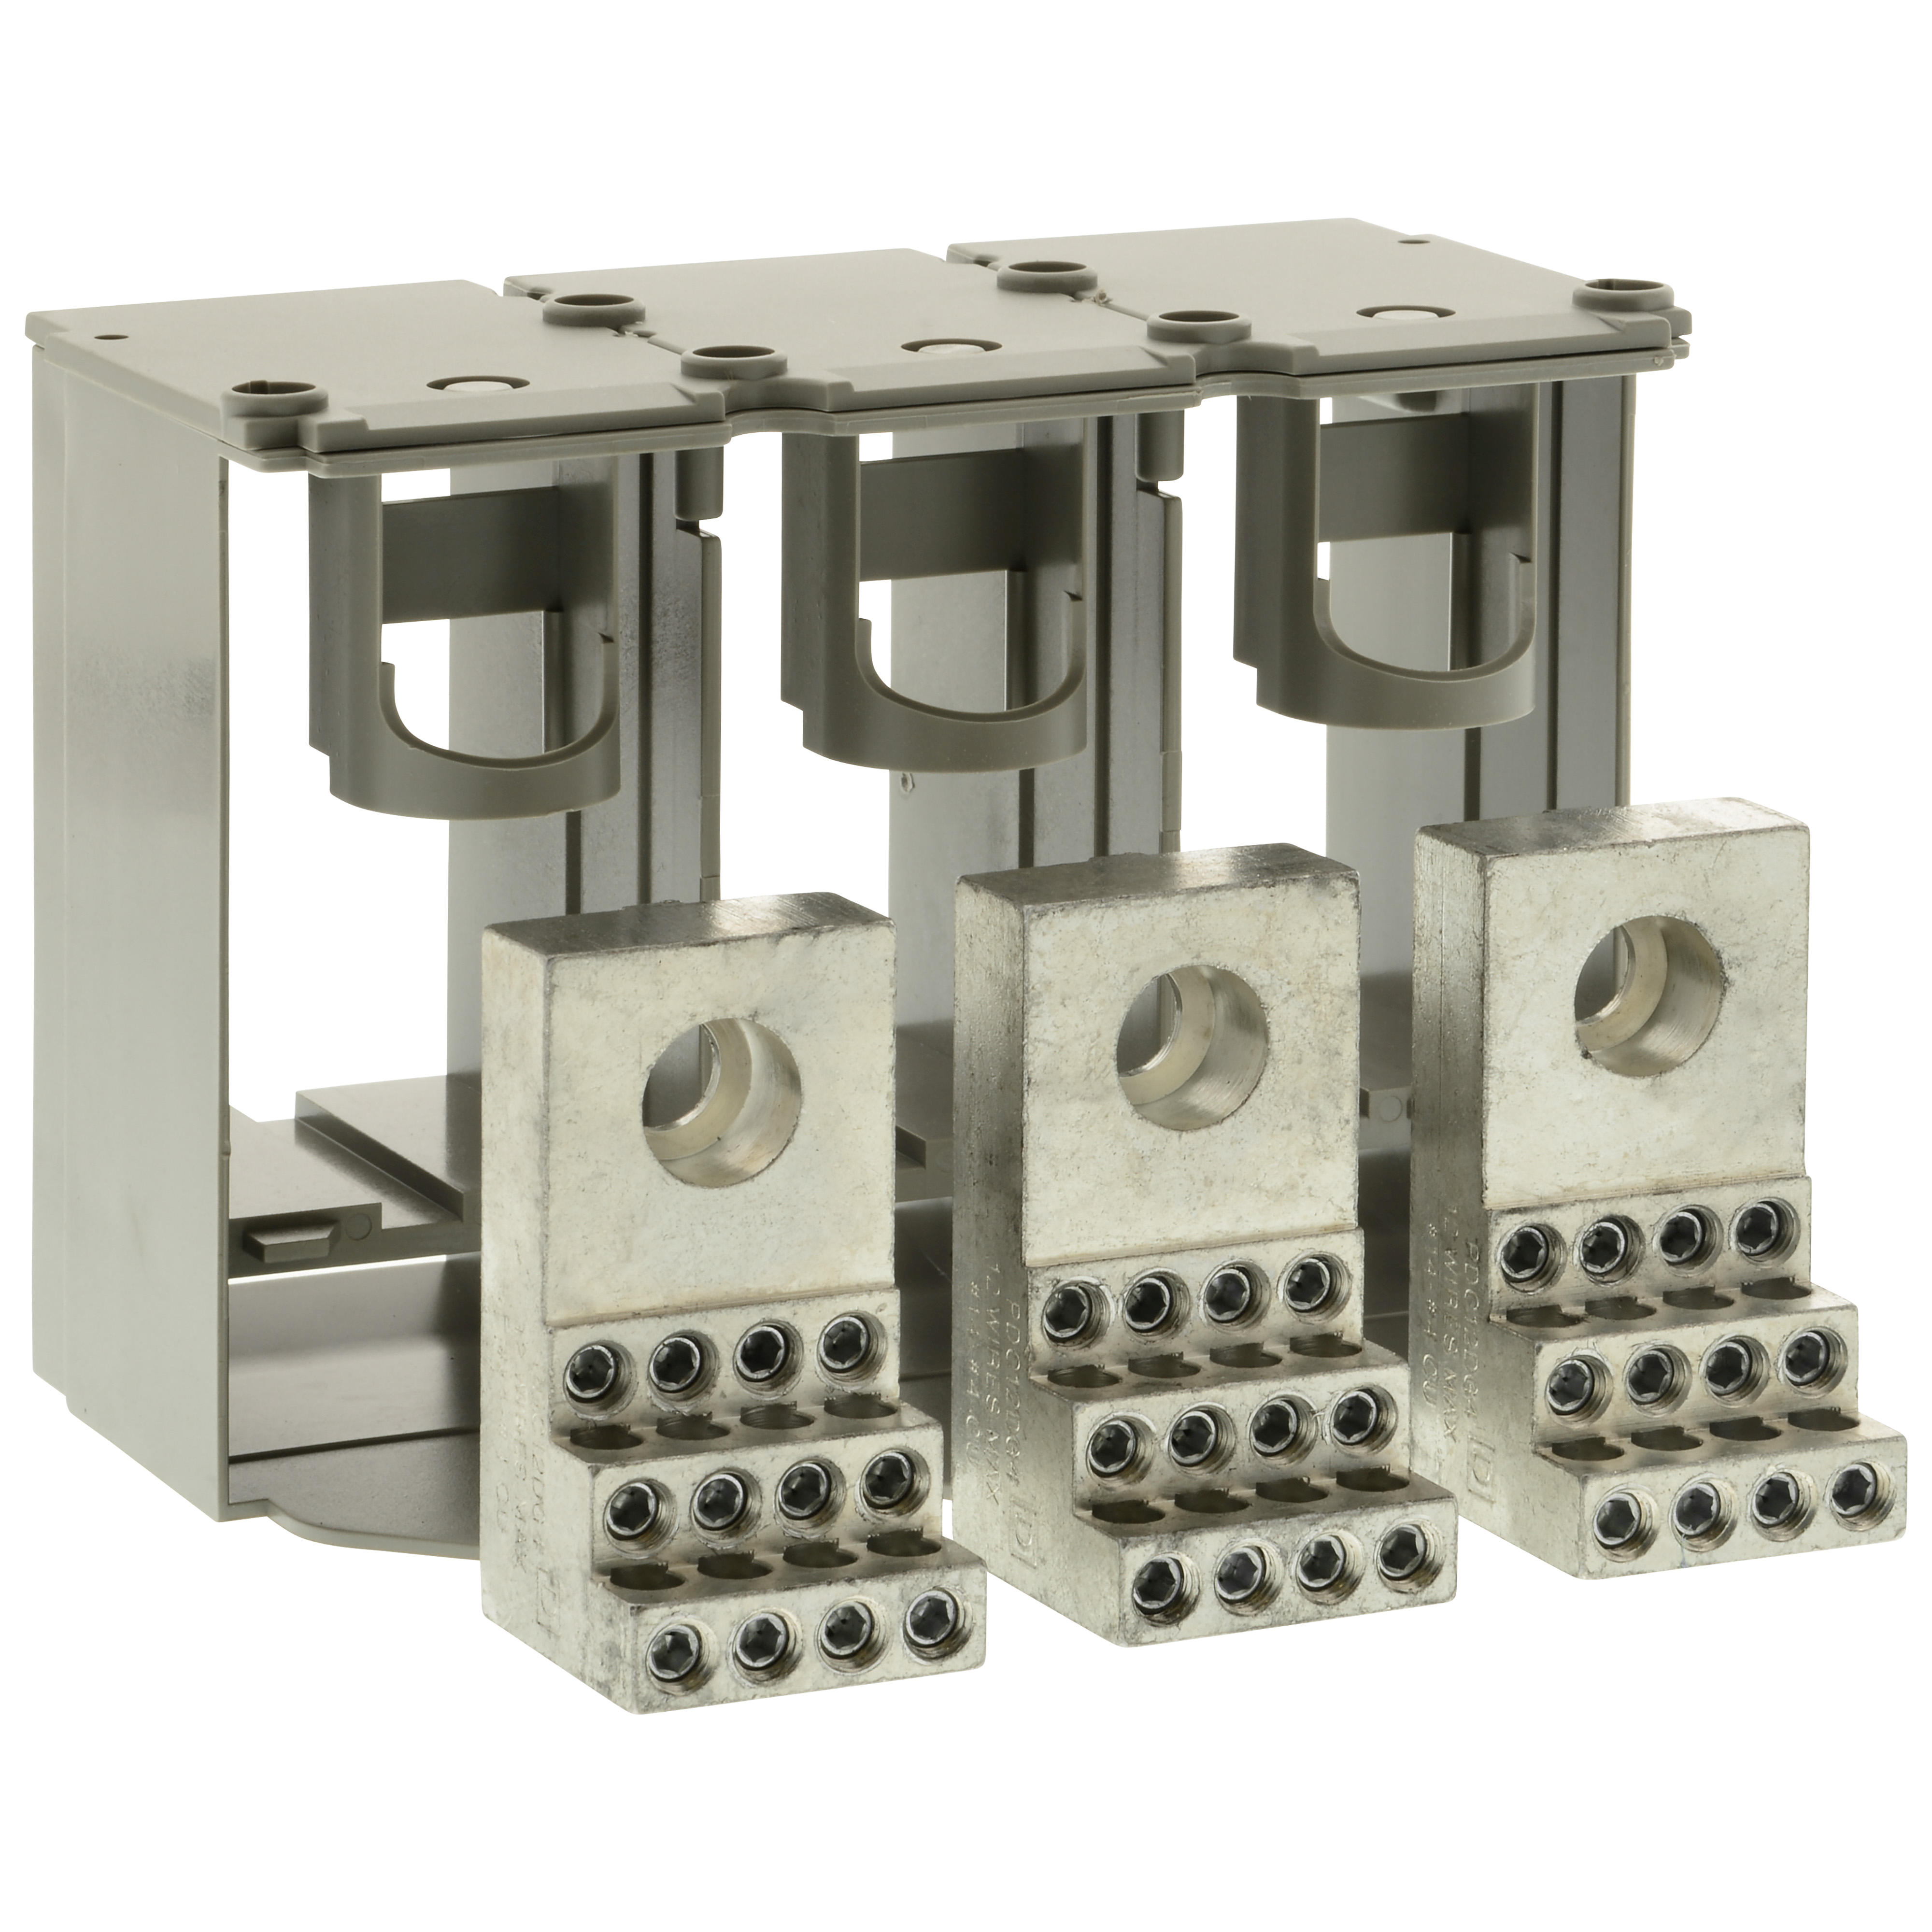 SQUARE D PowerPact H-Frame Molded Case Circuit Breakers Accessories - PDC12DG4L3